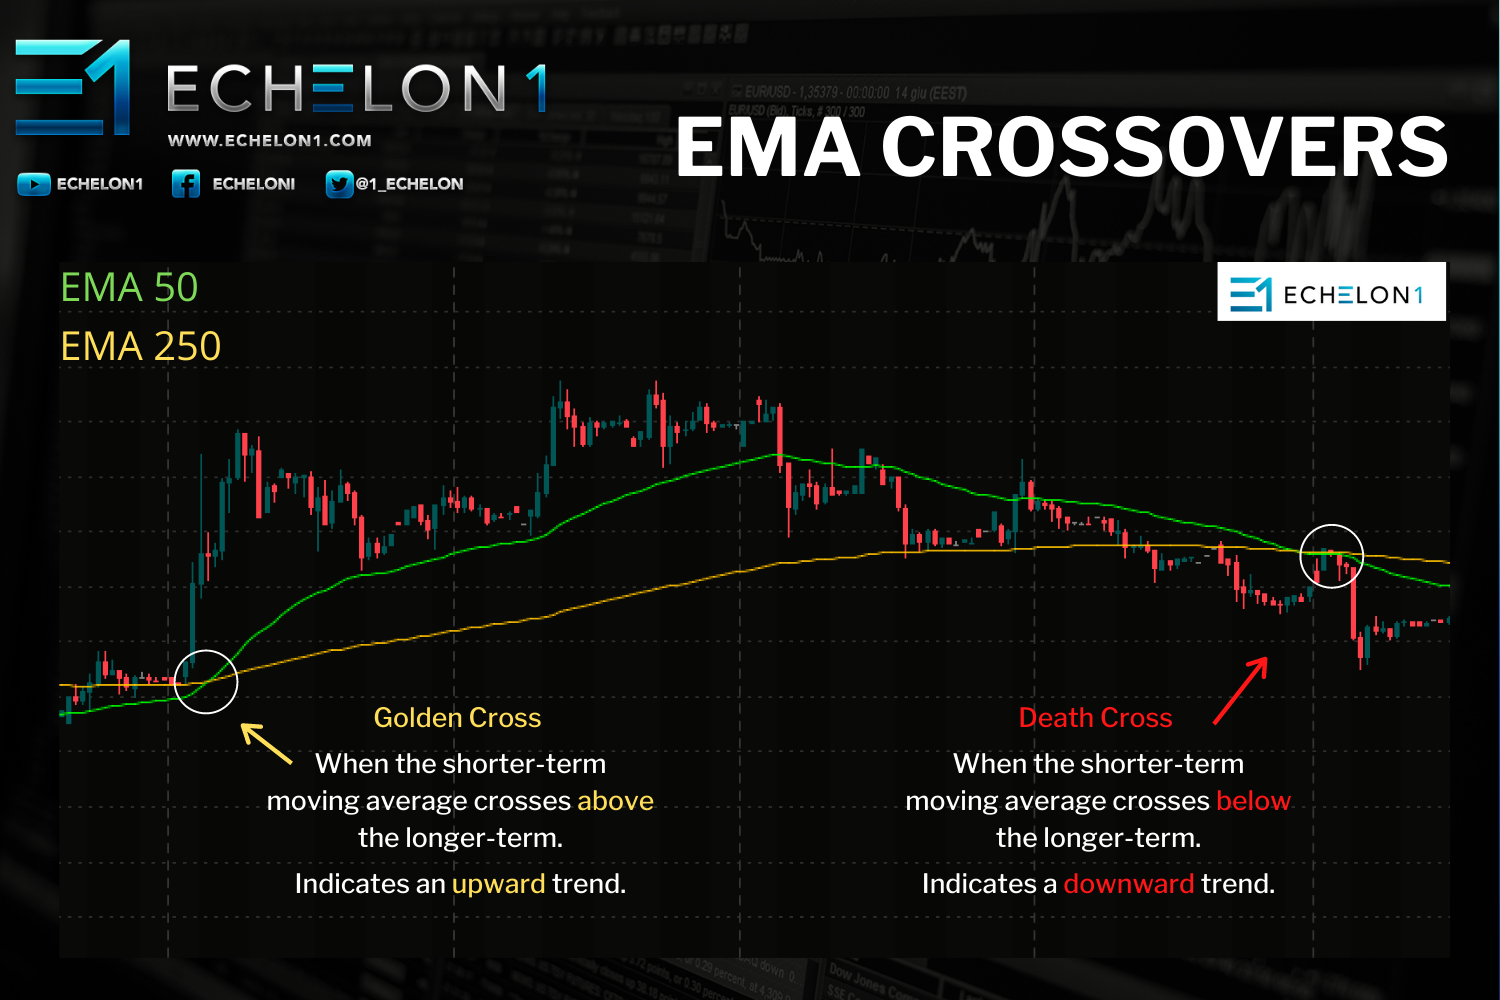 EMA Crossovers - Moving Averages